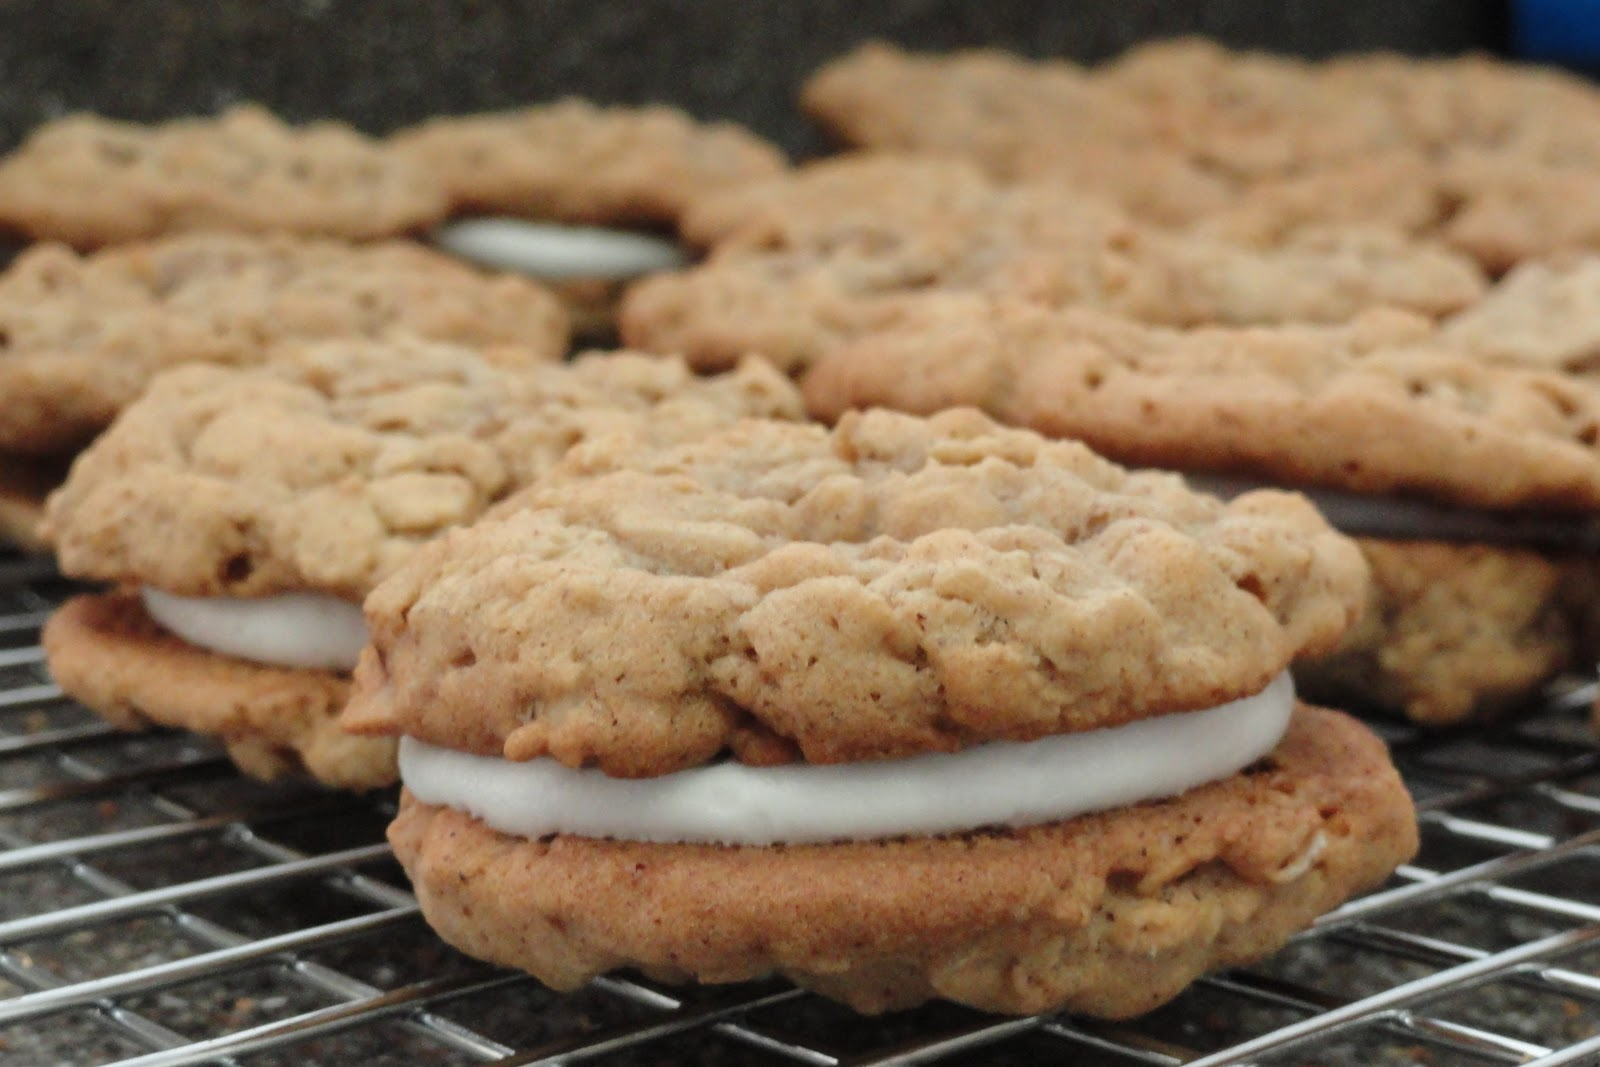 Musings of a Cul-de-Sac Mom: Homemade Oatmeal Cream Pies